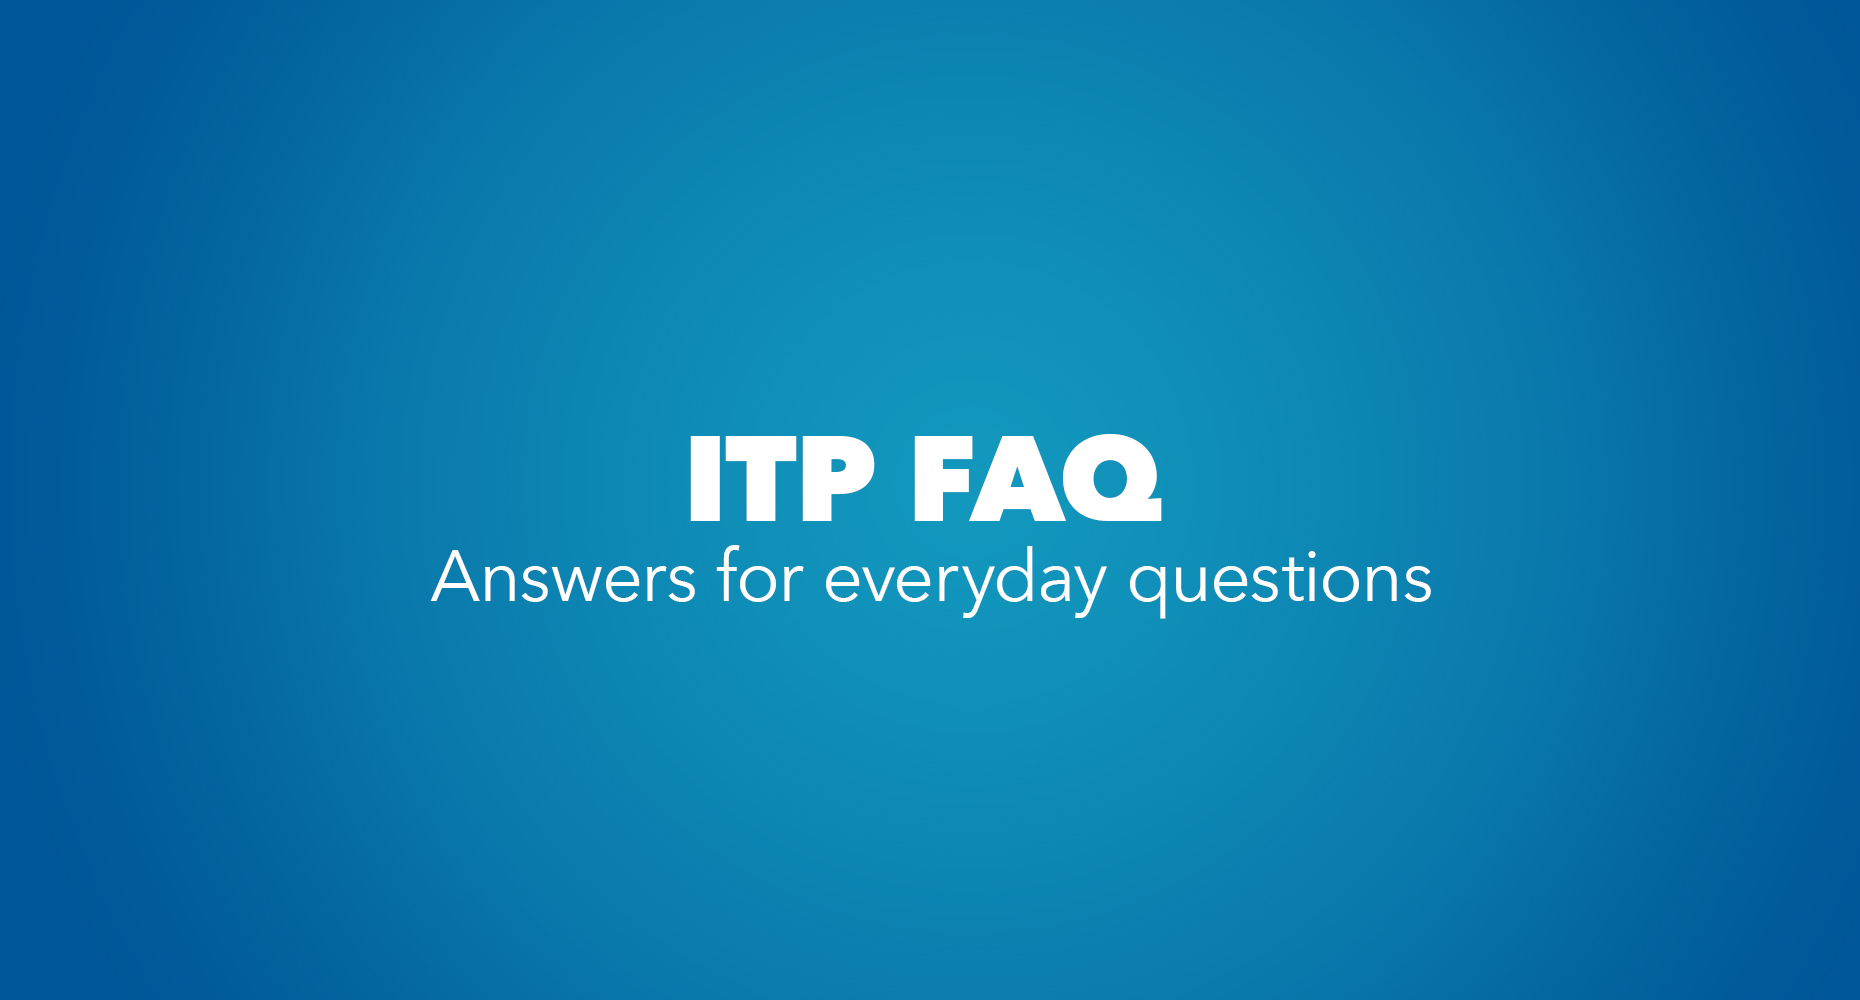 ITP FAQ_Image Card